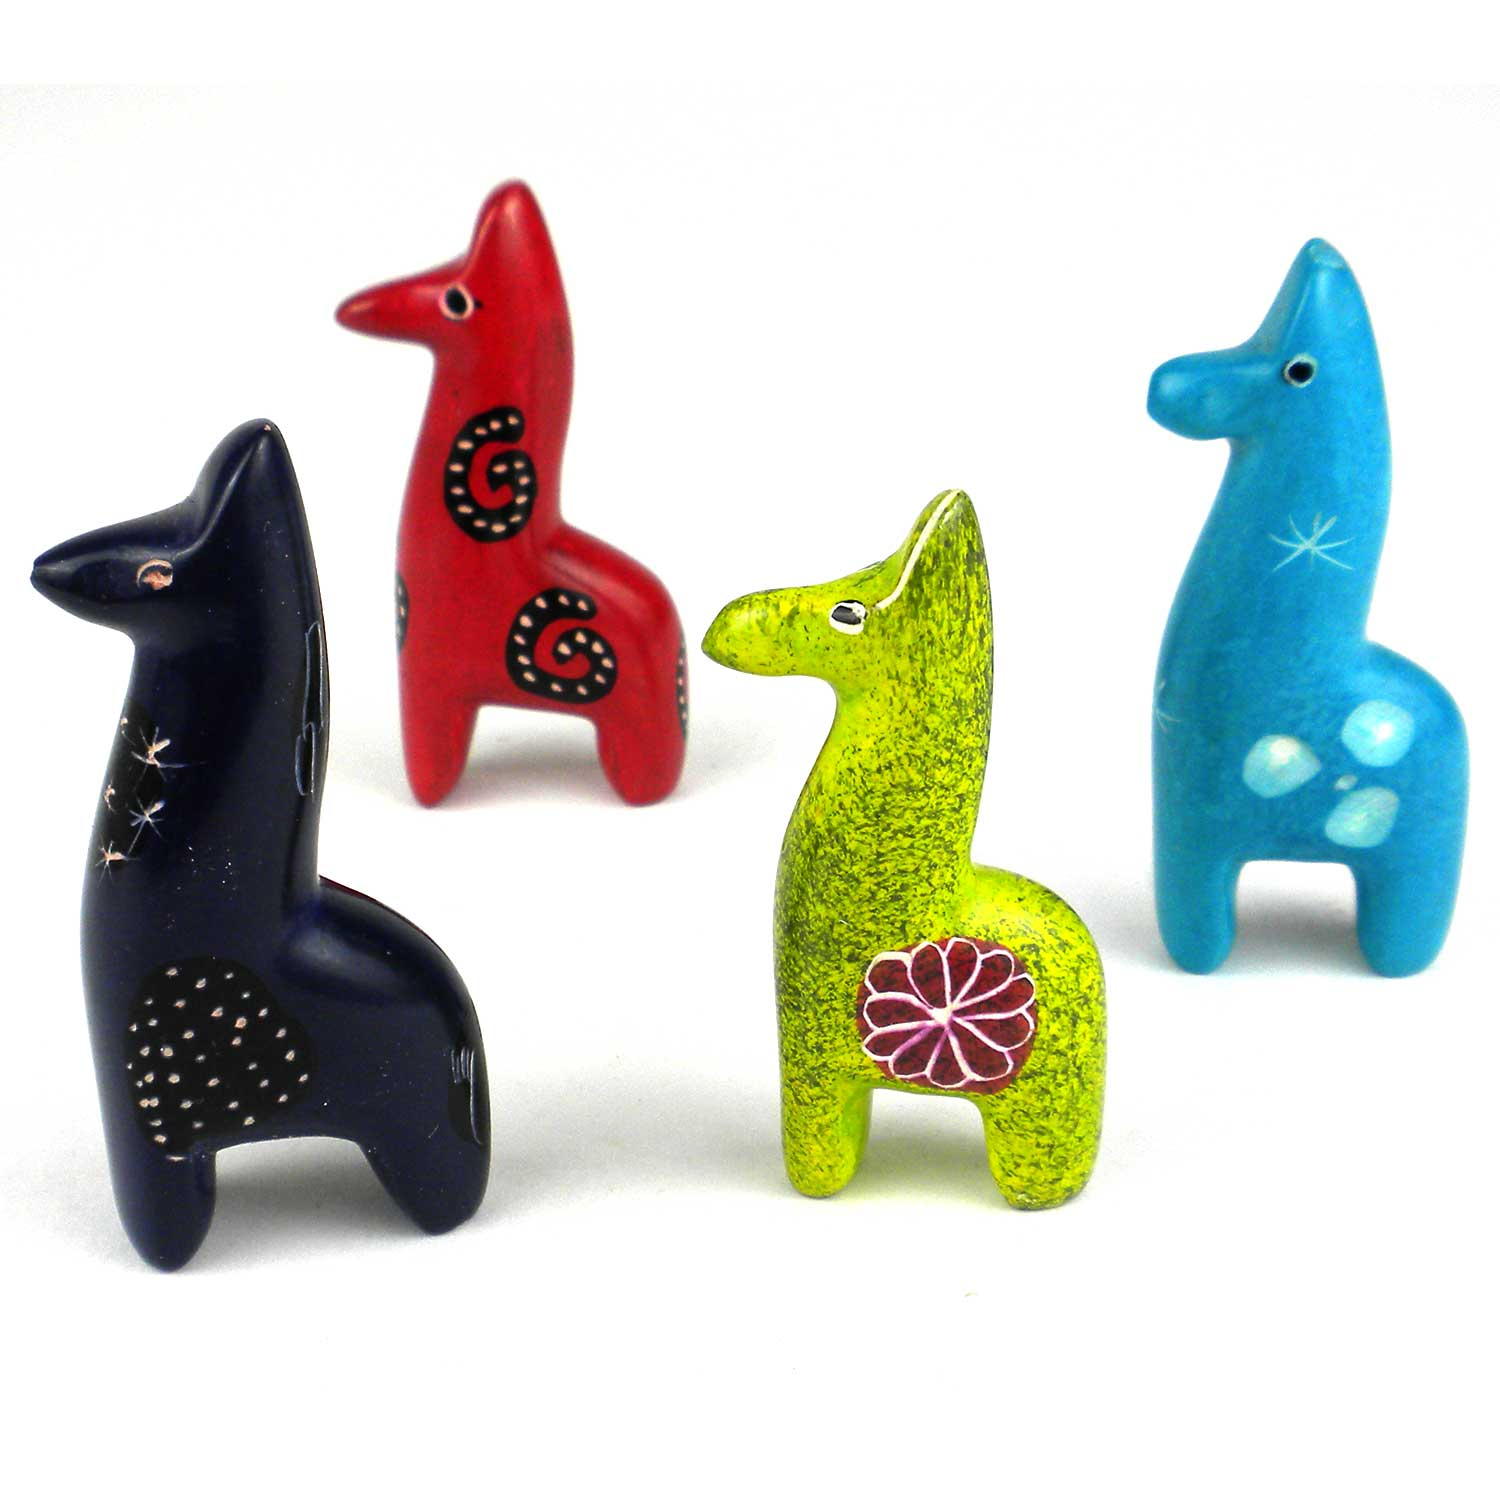 Tiny Soapstone Giraffes Blowout! Our Choice Colors